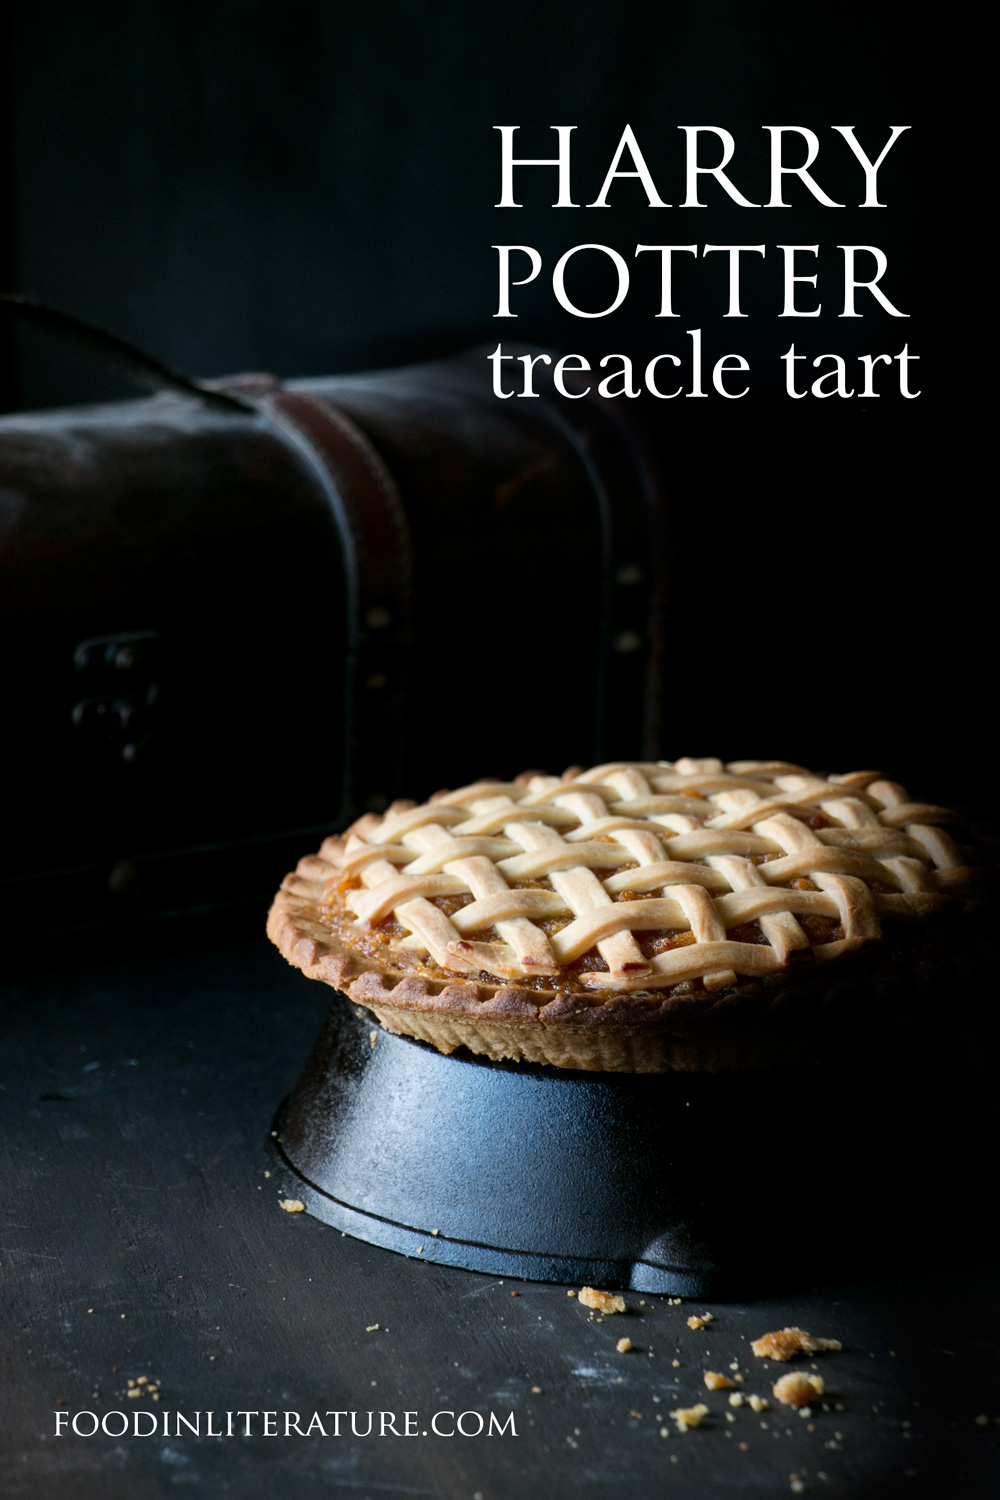 Harry Potter Series | Treacle Tart